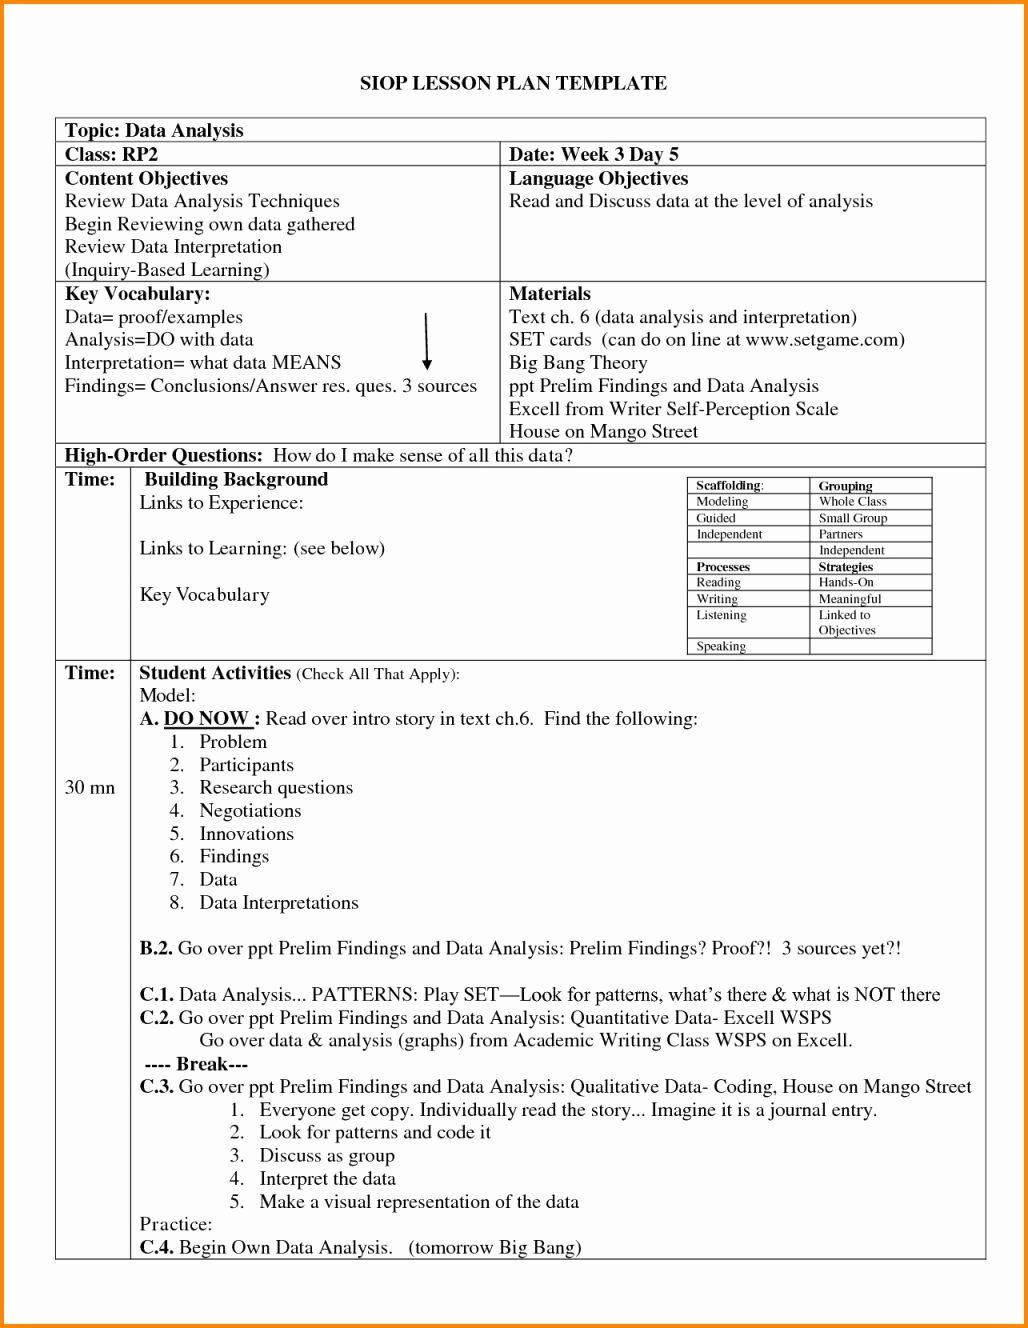 29 Siop Lesson Plan Template in 2020 (With images